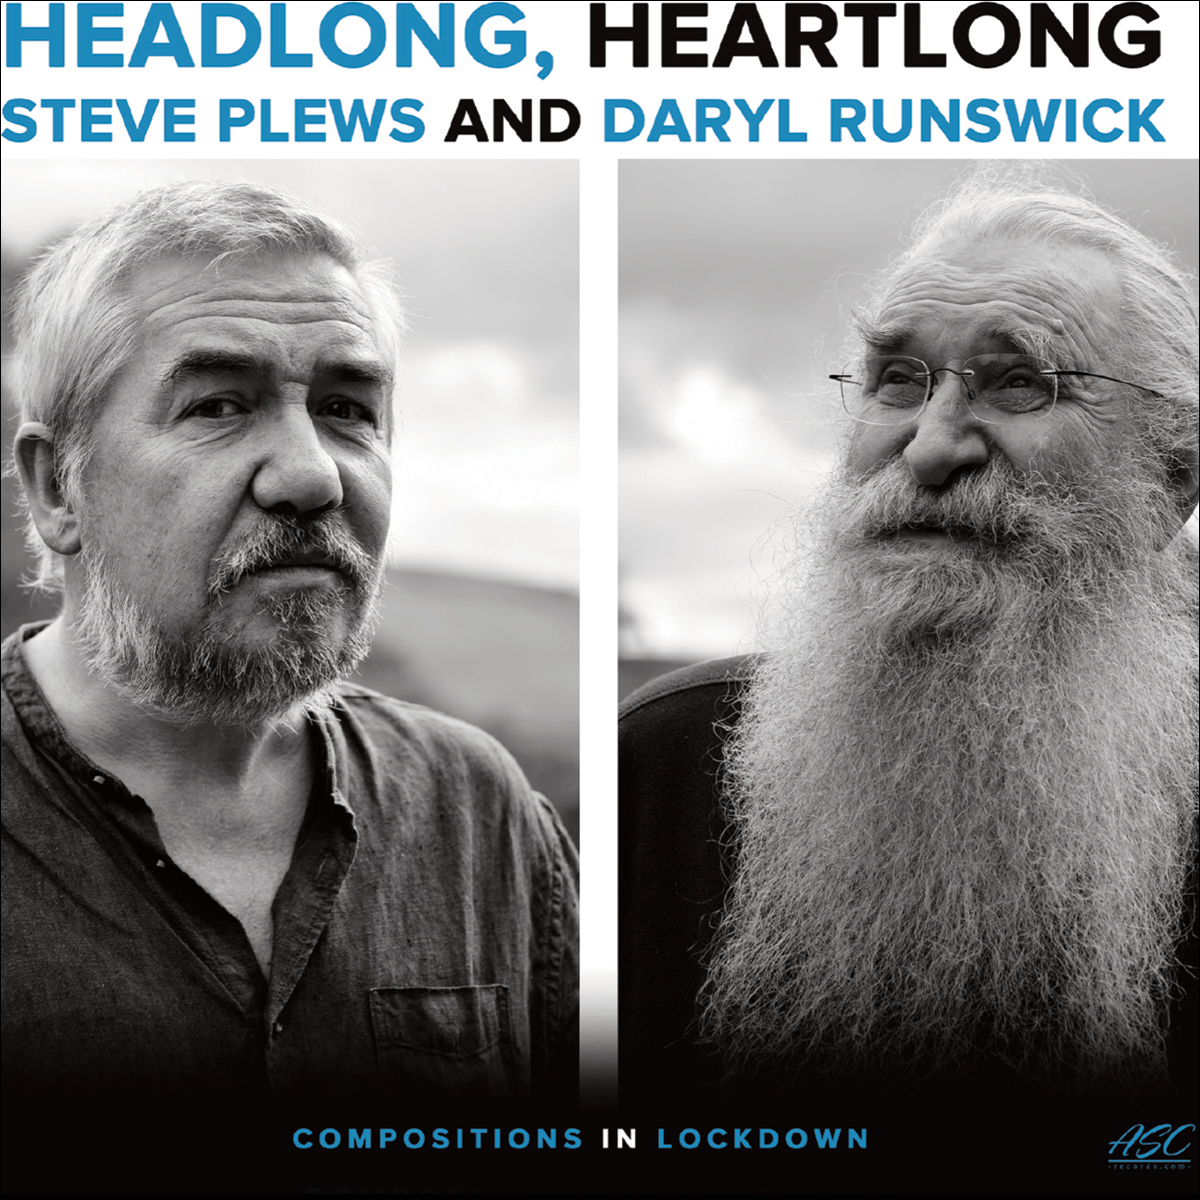 STEVE PLEWS - Steve Plews / Daryl Runswick : Headlong / Heartlong cover